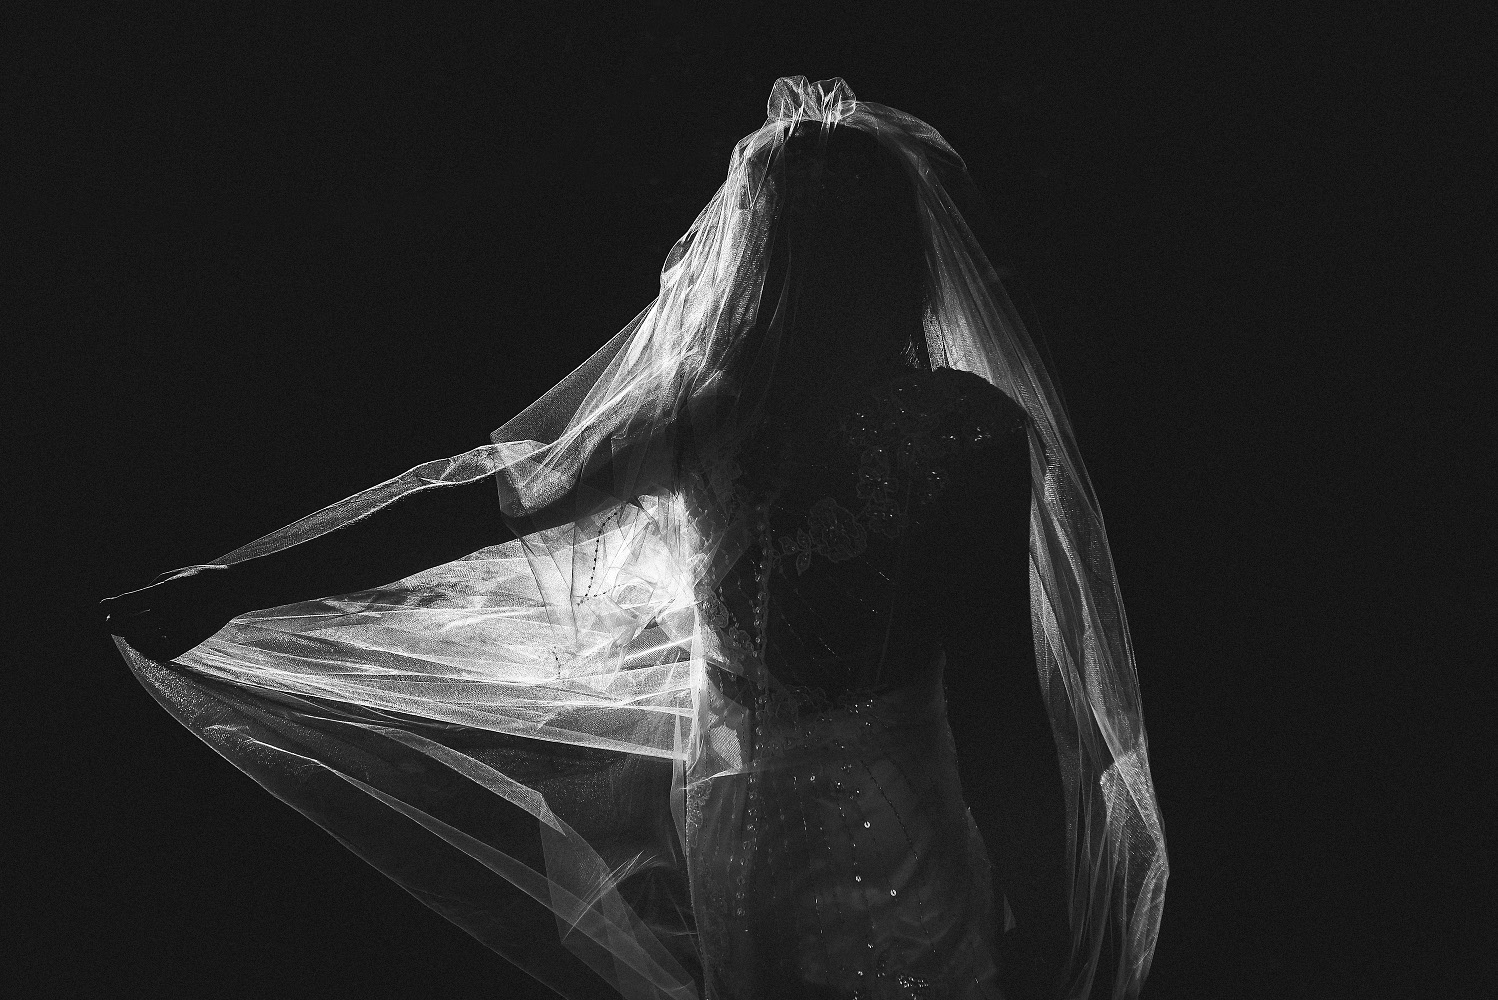 wedding veil caught in sunlight